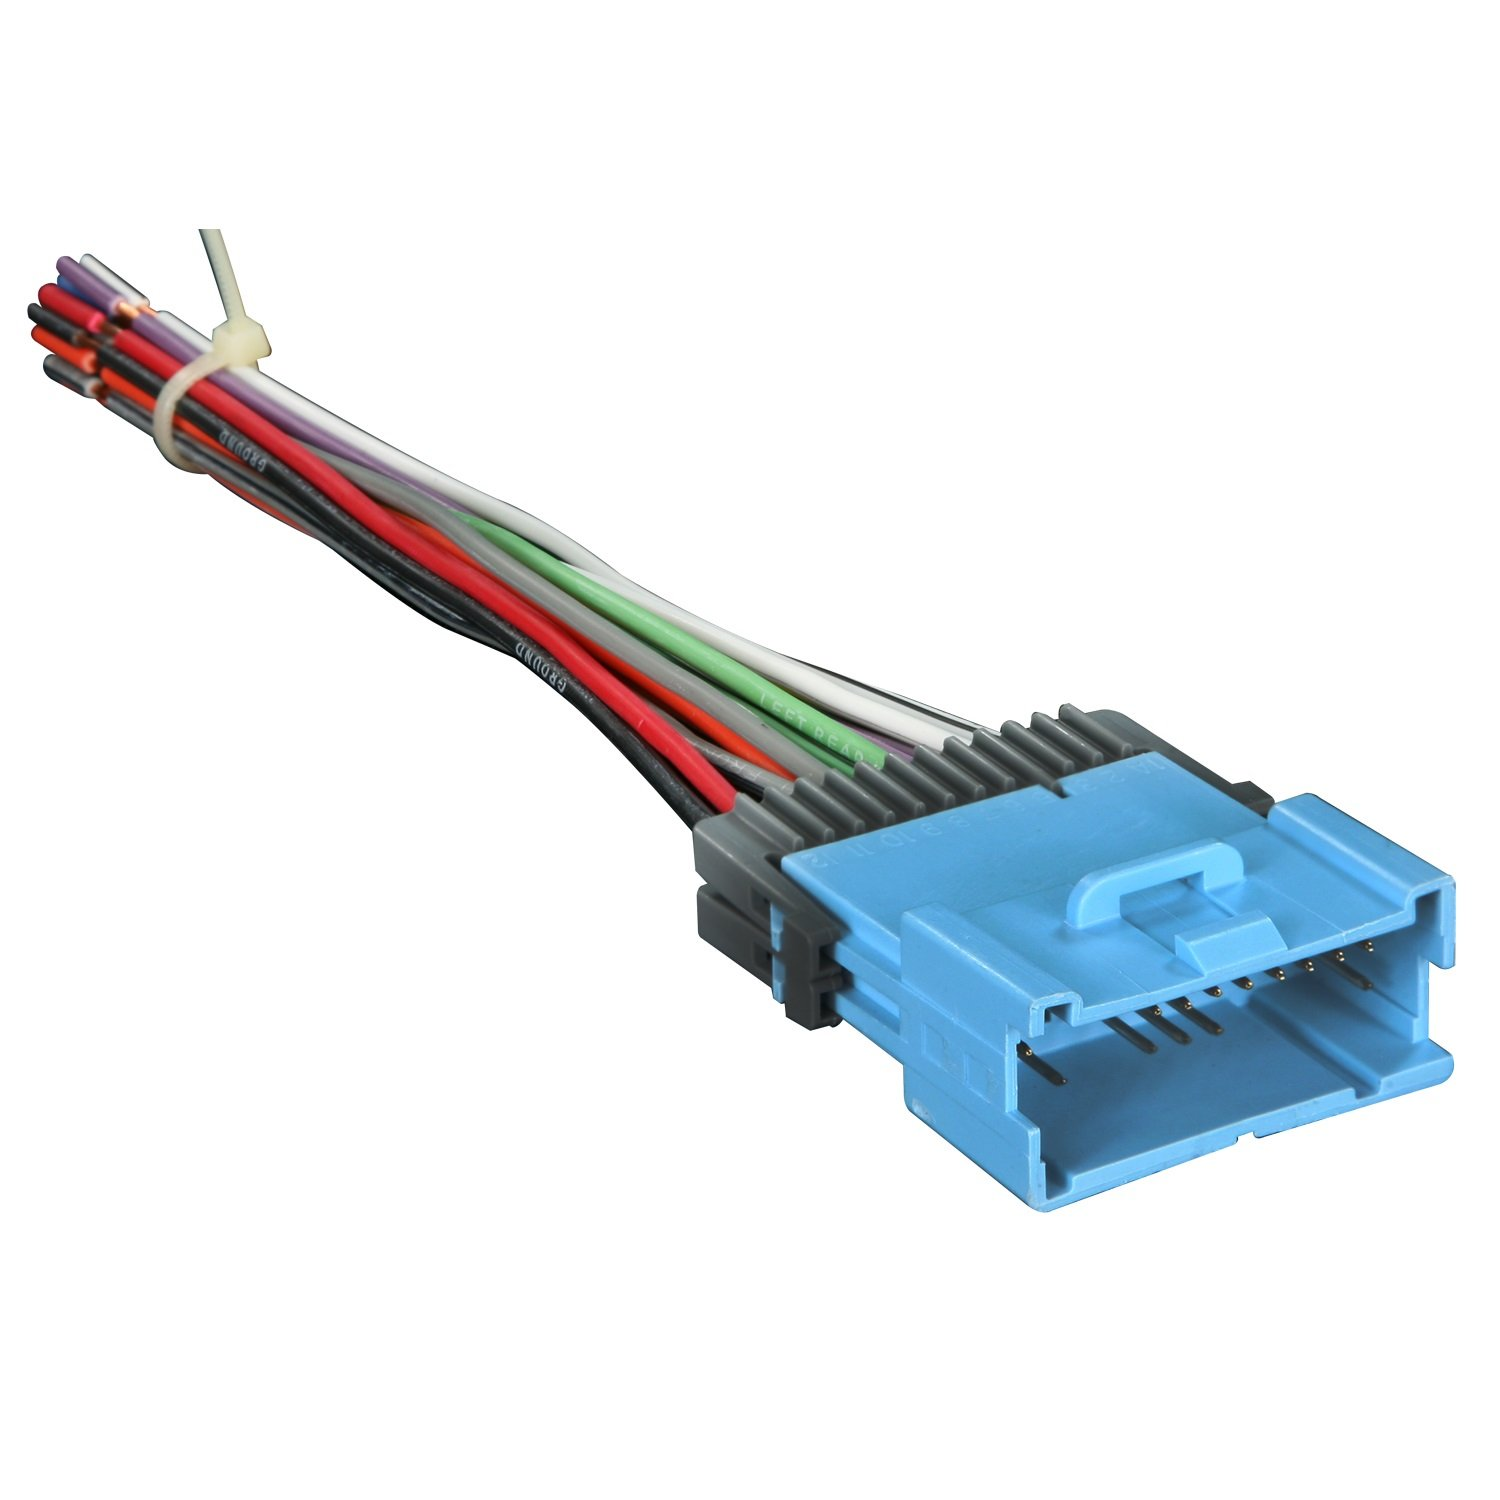 61ruWw 2aJL._SL1500_ amazon com metra 70 2102 radio wiring harness for gm 04 05 car GM Wiring Color Codes at nearapp.co